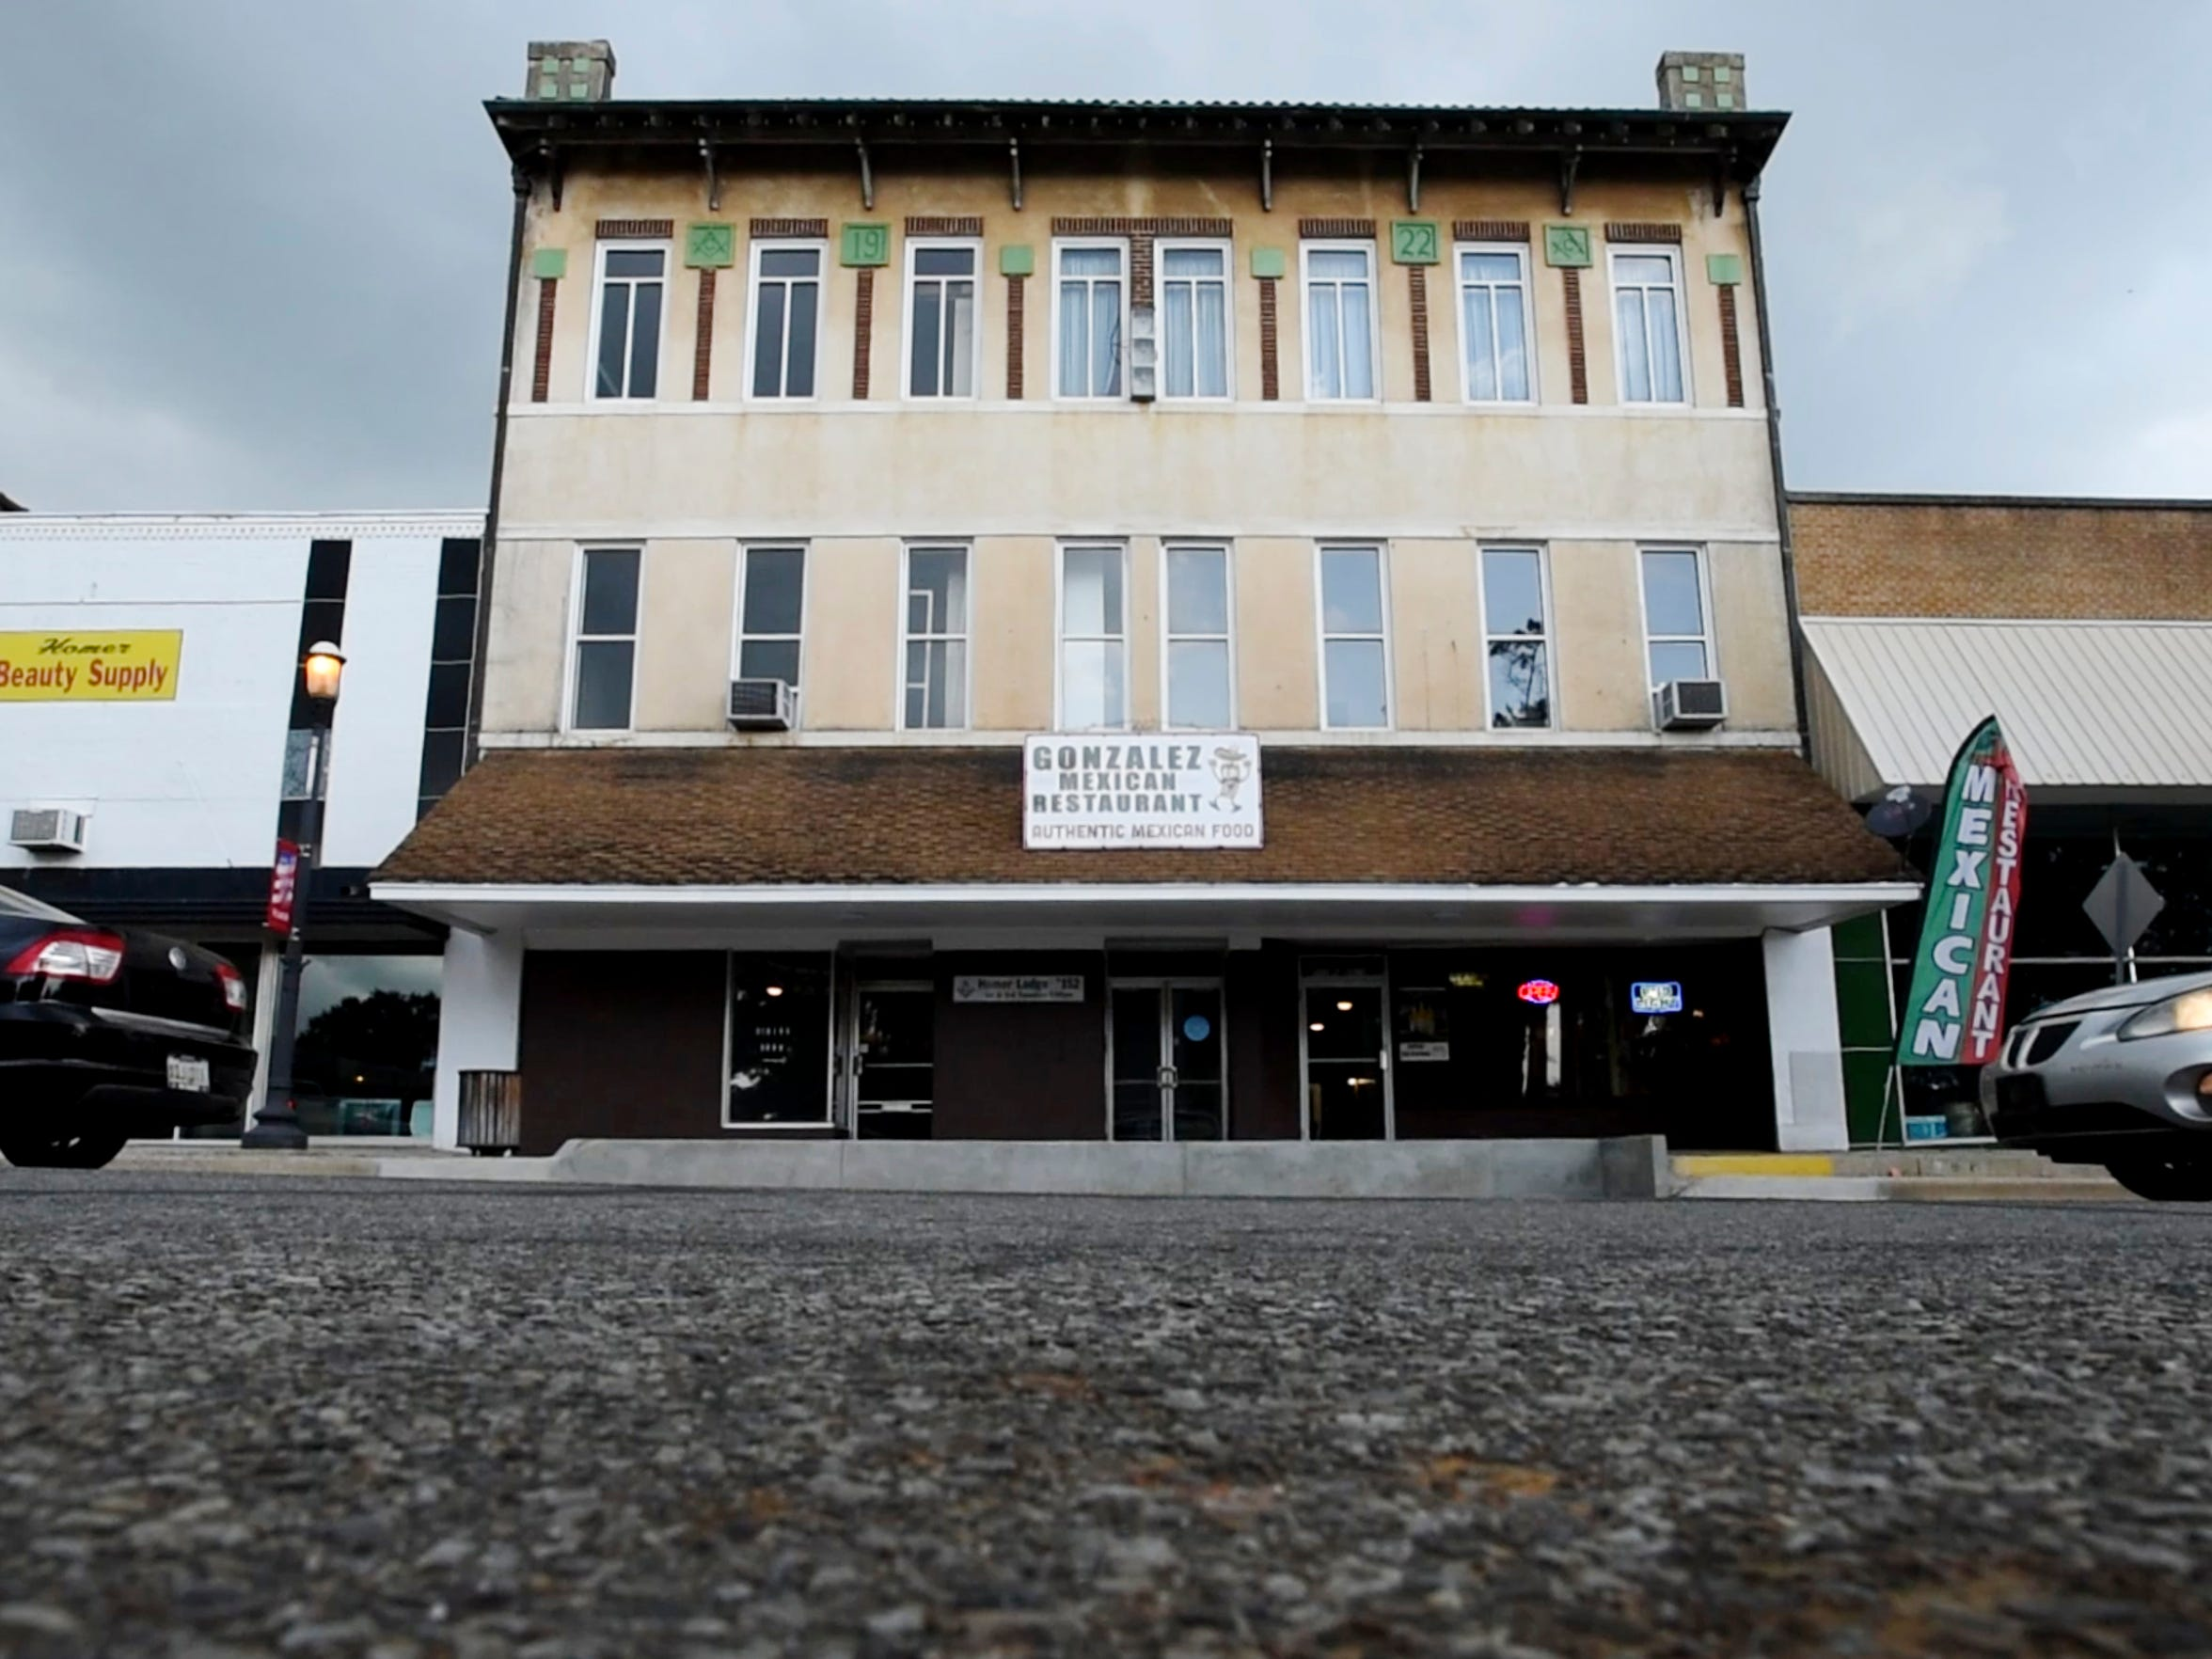 Main Street Homer, the grant recipient, will invest in HomerÕs arts community and make steps to restore the history and culture of the town. The ACT grant will be used to create an arts center with affordable studio spaces for artists and classrooms for the community to learn their artistry.